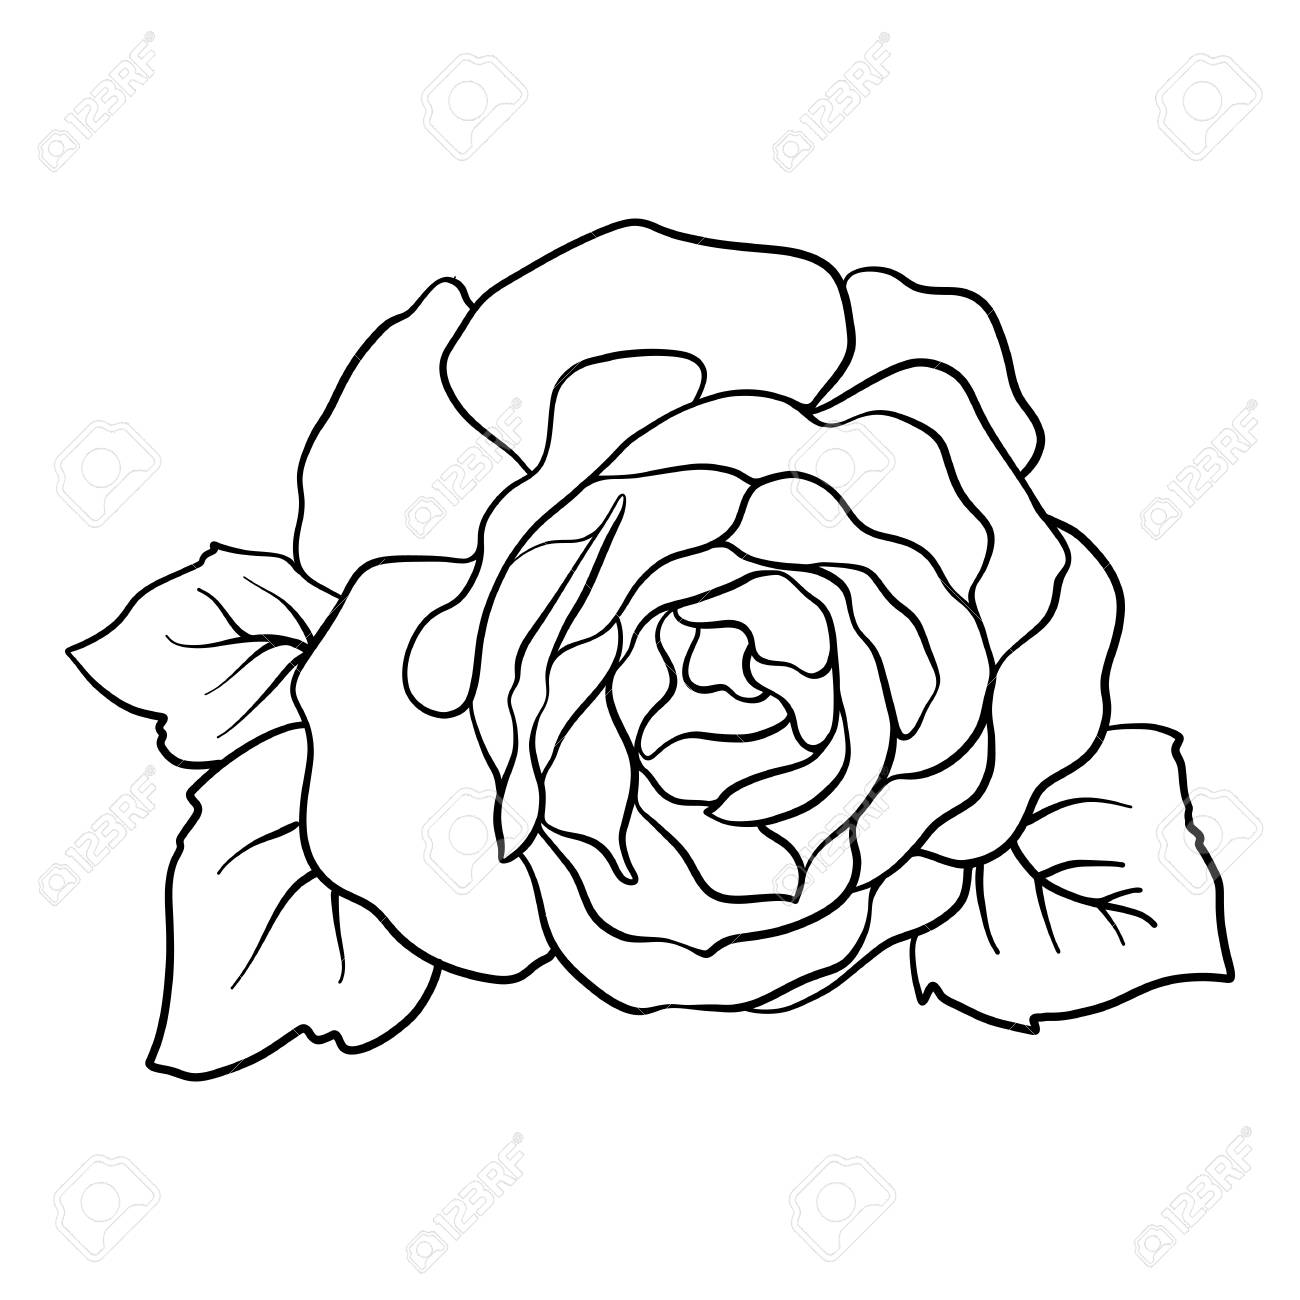 Isolated rose outline drawing stock vector illustration stock vector 85725732